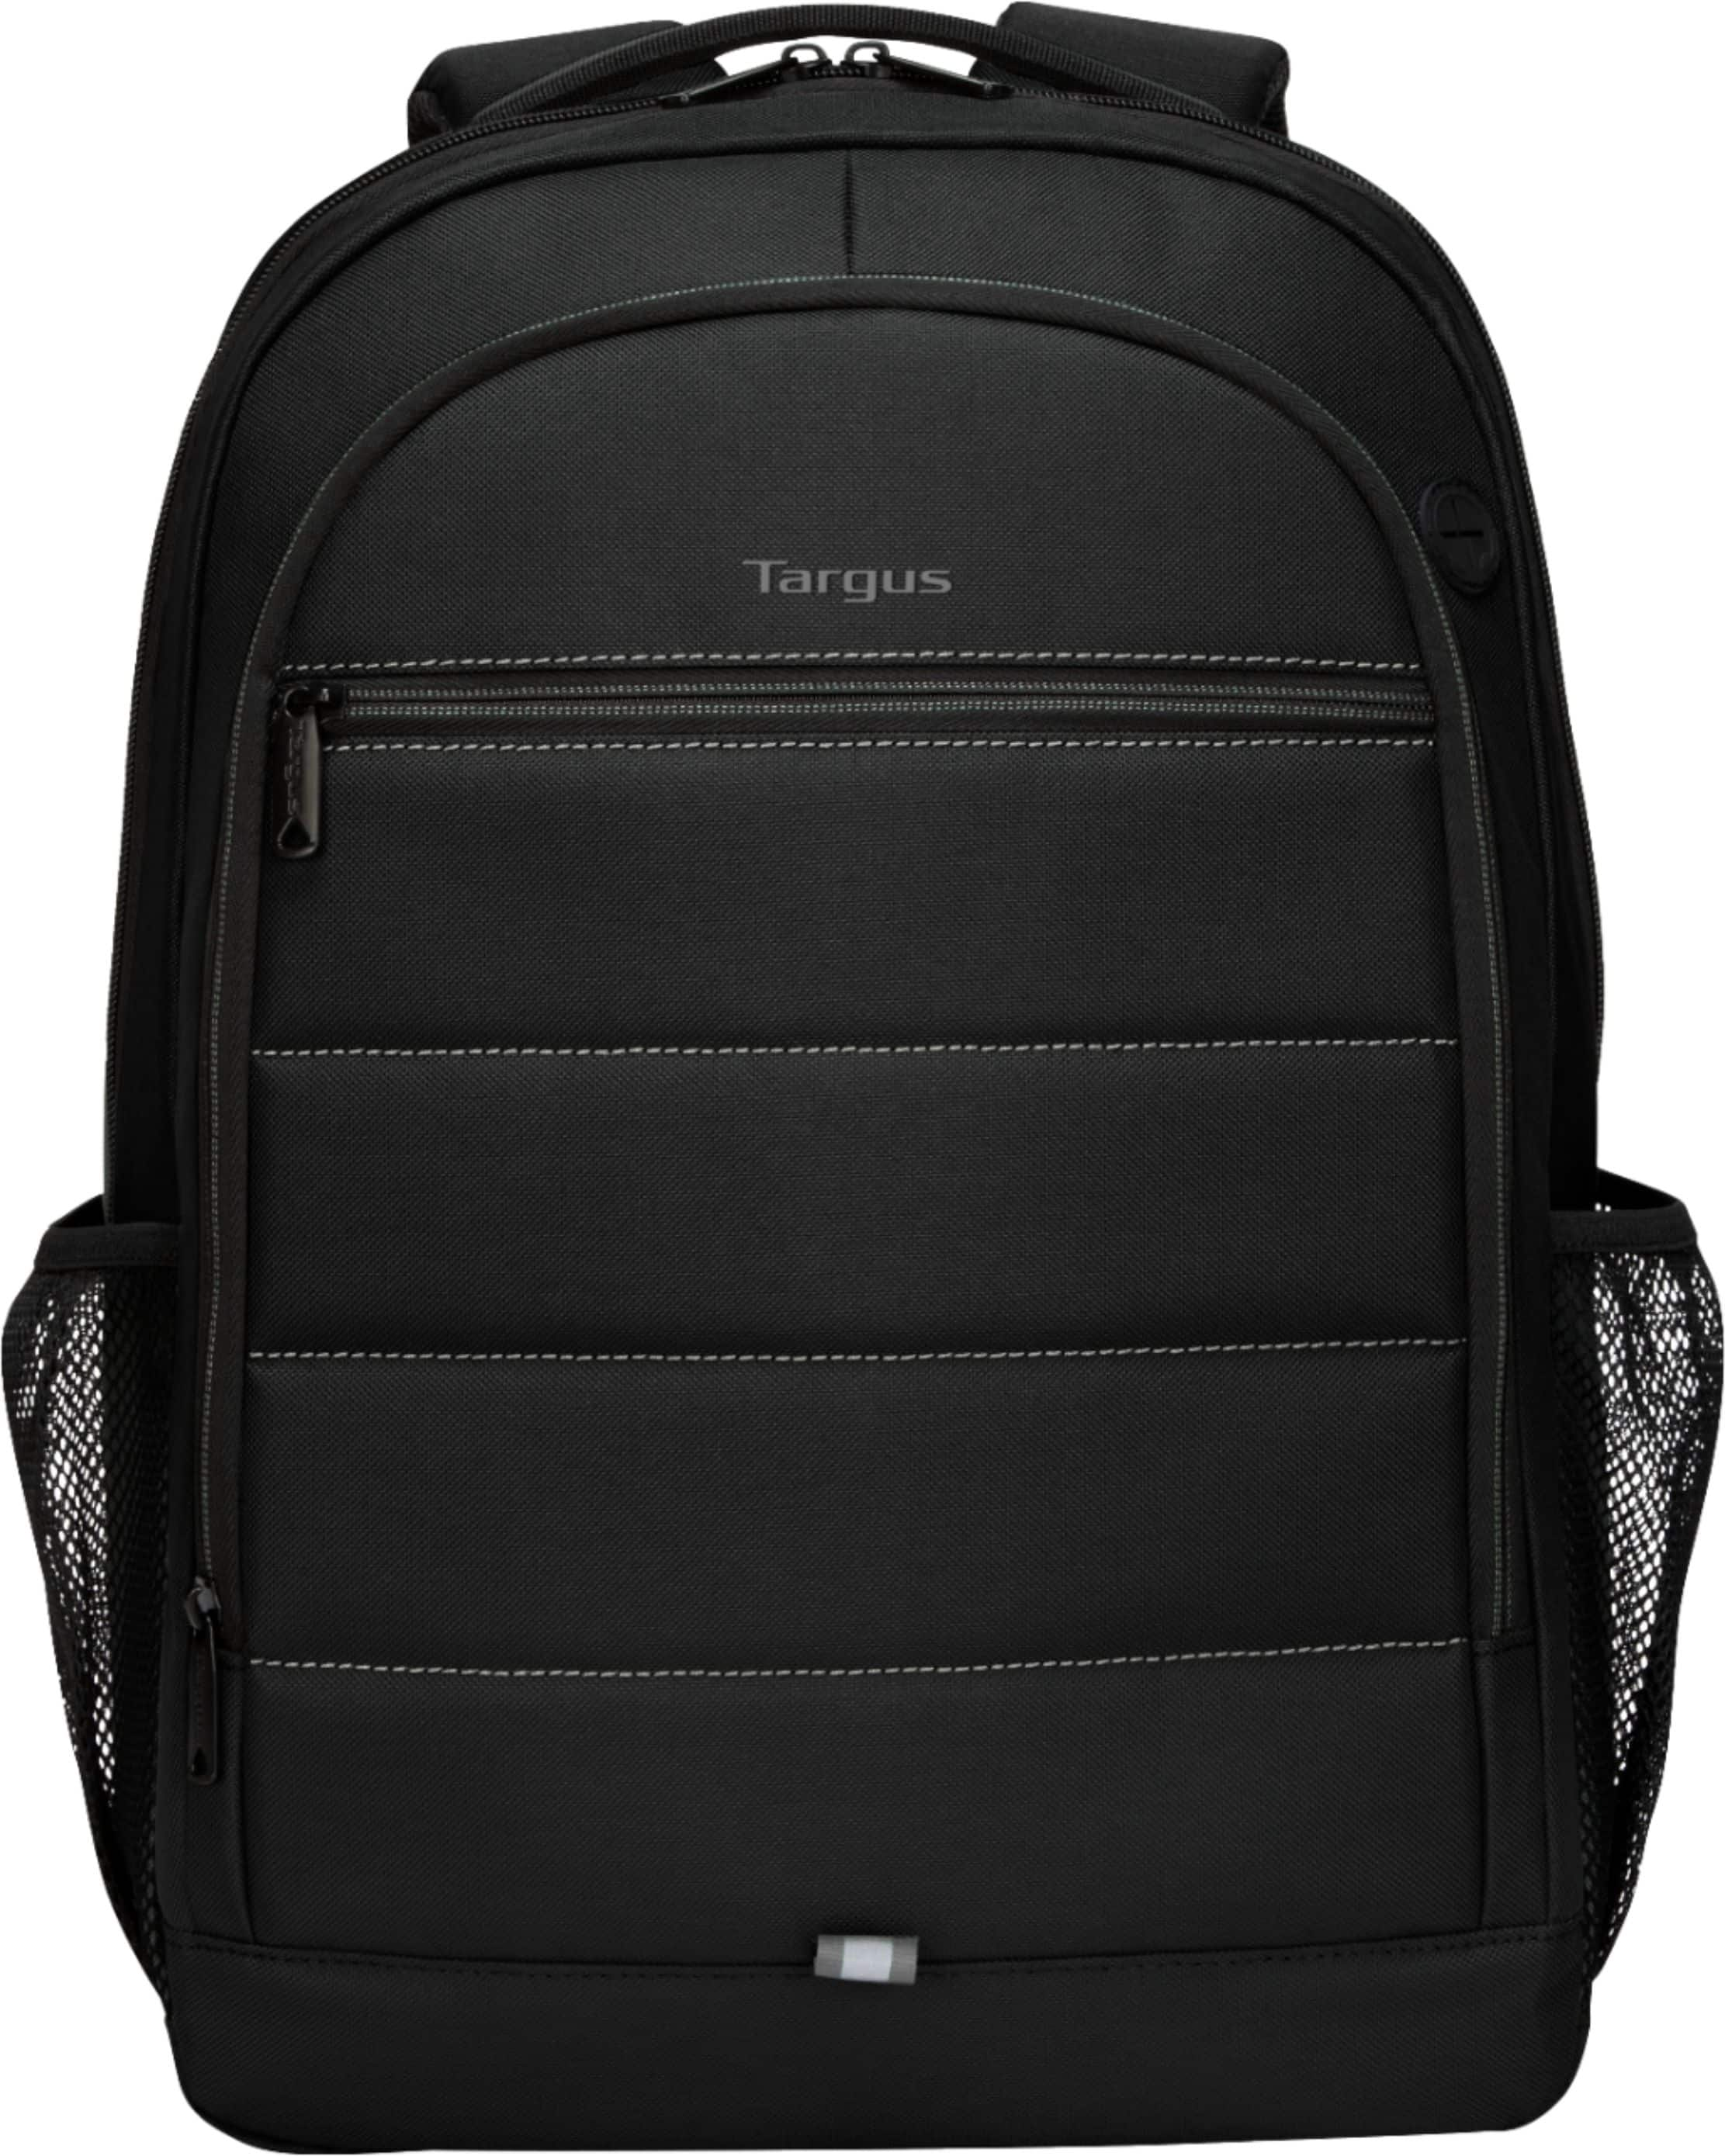 """Targus 15.6"""" Octave Laptop Backpack (3 colors) $10 + free shipping"""